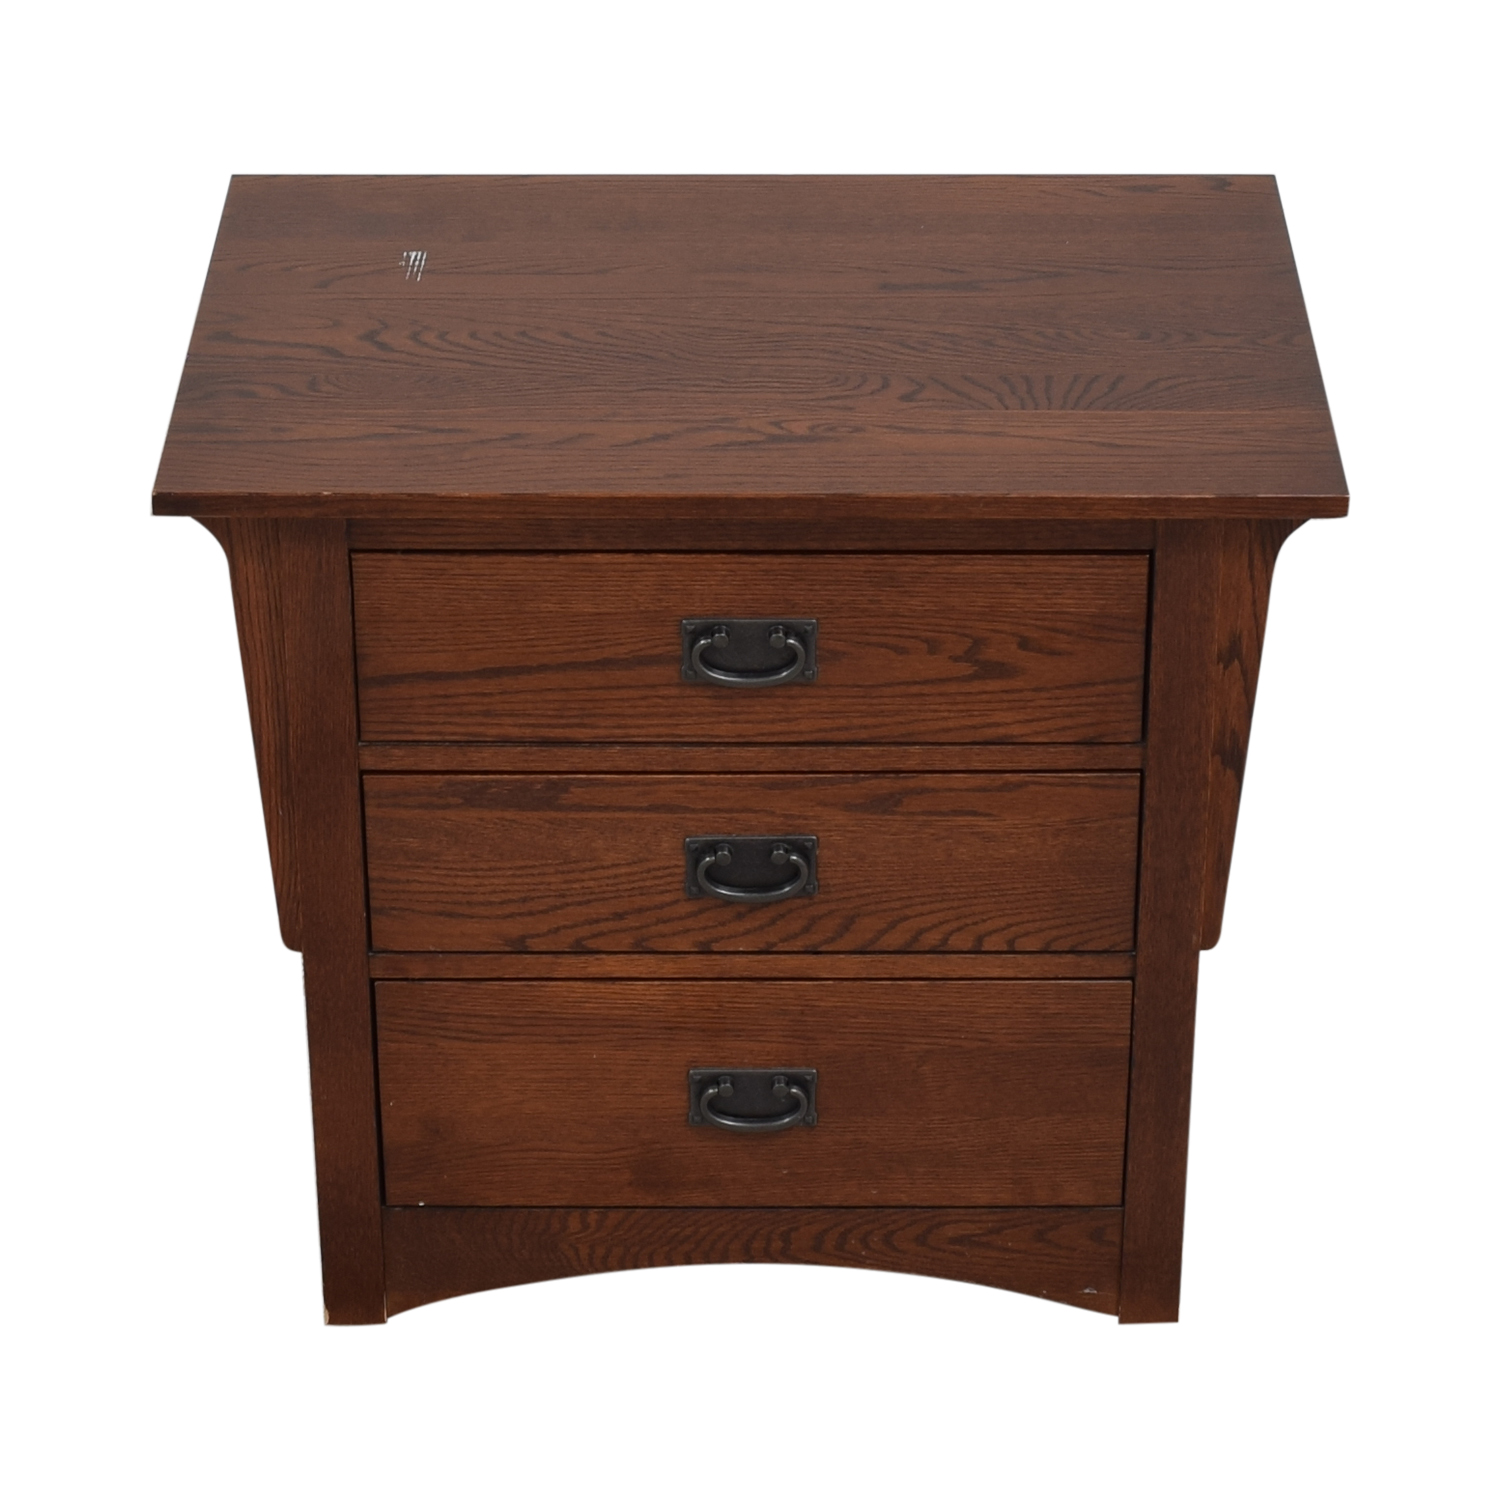 Shermag Shermag Mission Style Night Stand for sale